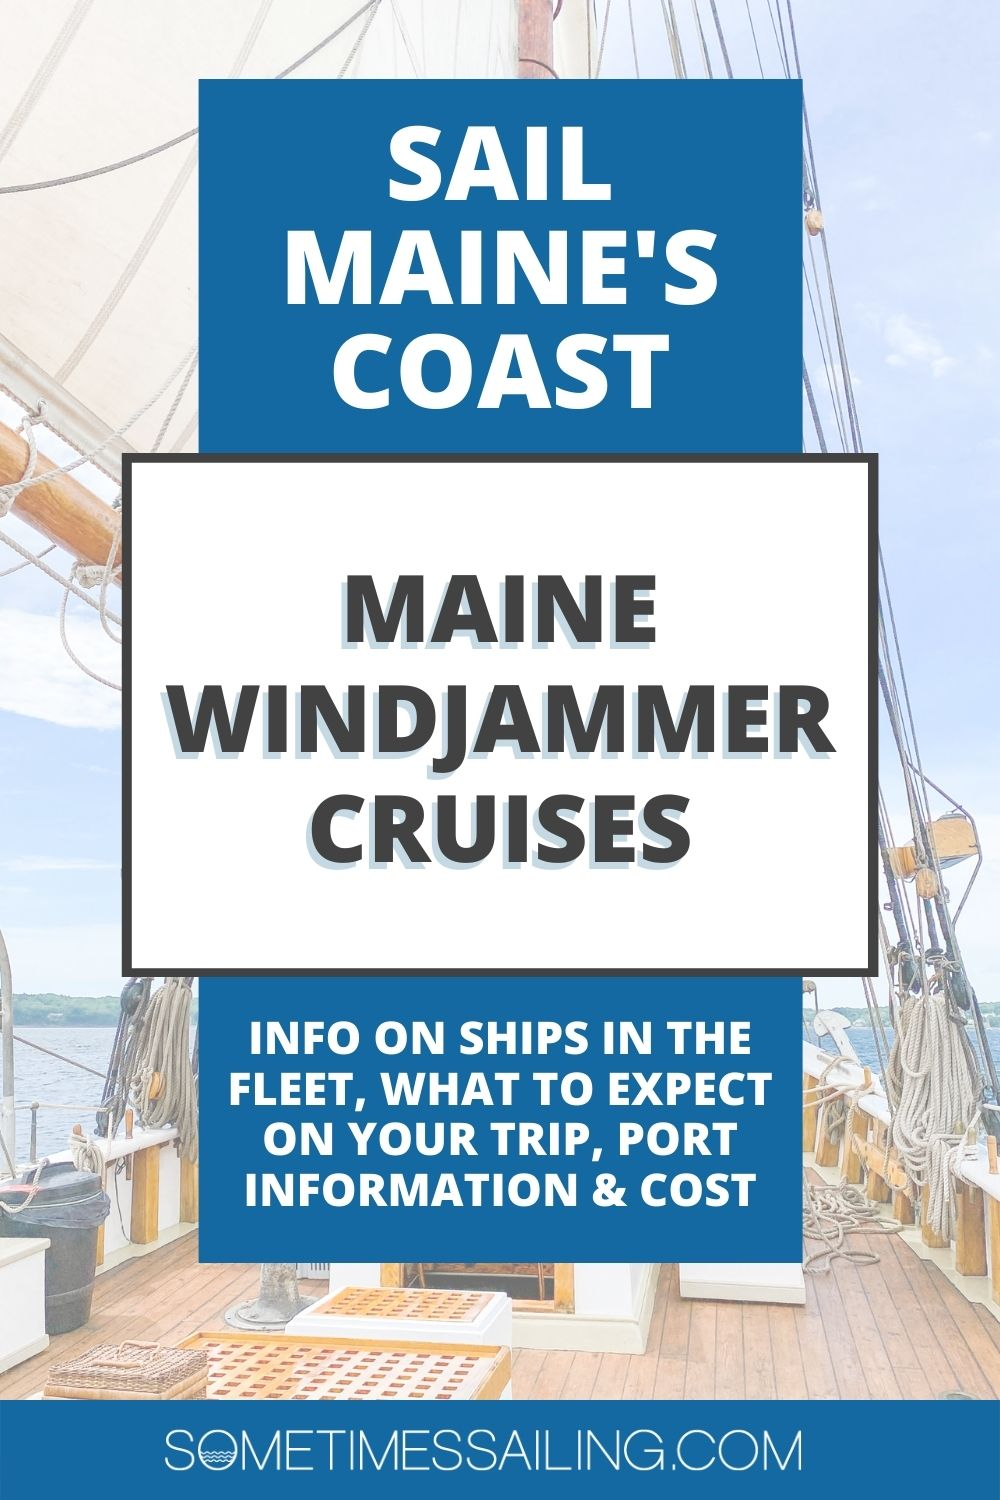 Sail Maine's Coast with Maine Windjammer Cruises. Info on ships in the fleet, what to expect on your trip, port info & more.